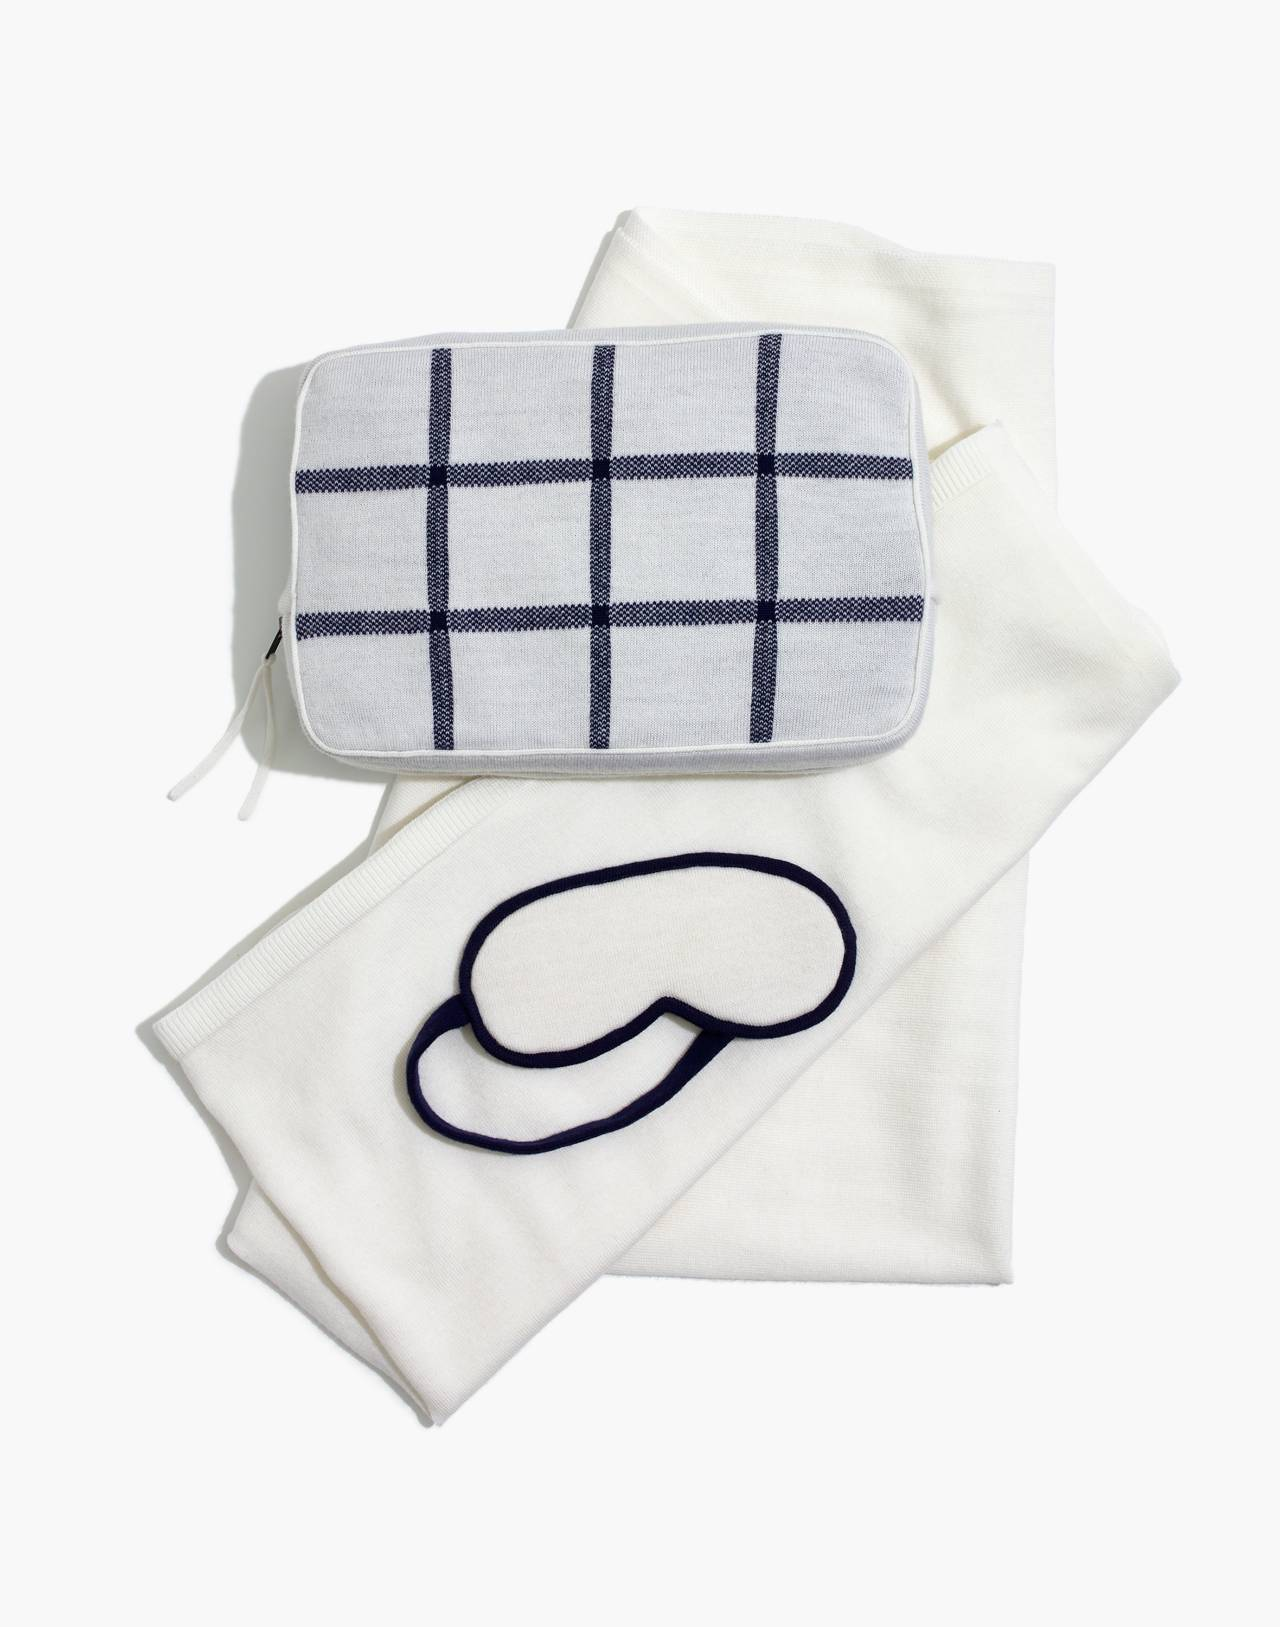 Madewell x Parachute Merino Travel Kit in navy multi image 1